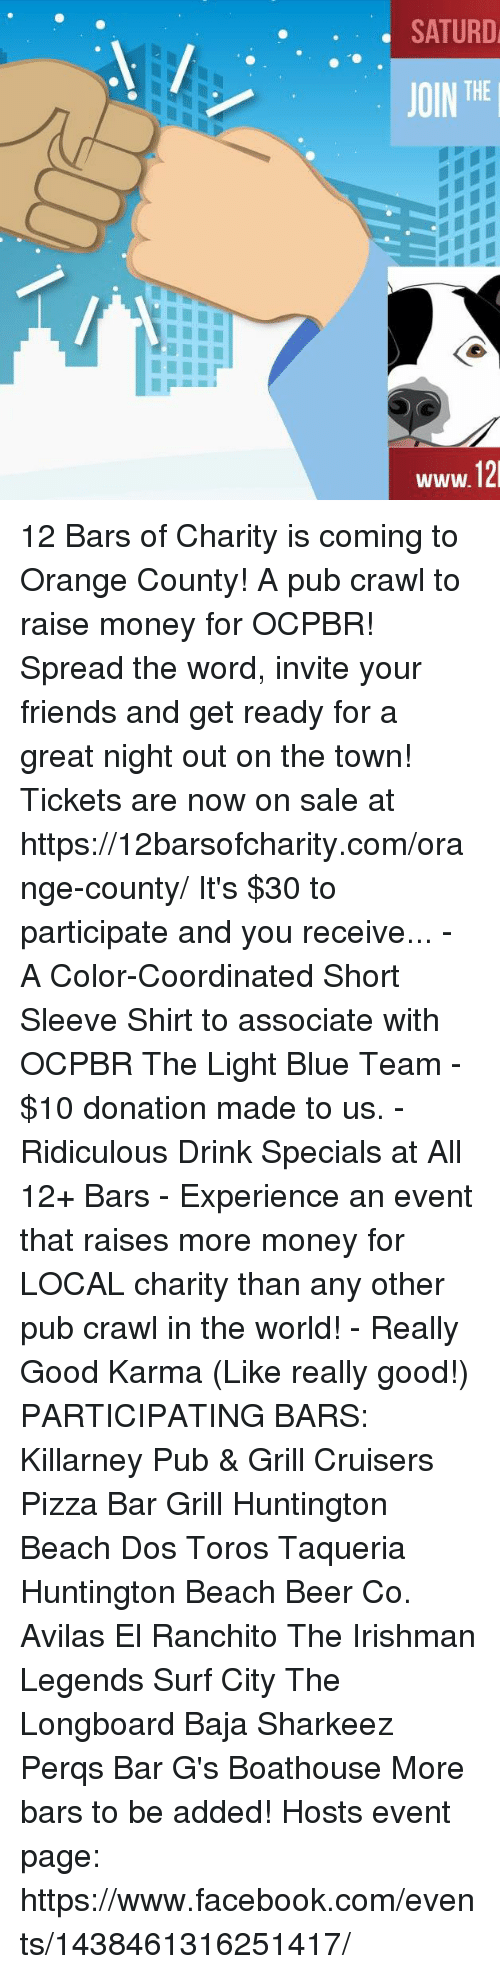 De Rh 12 Bars Of Charity Is Coming To Orange County A Pub Crawl To